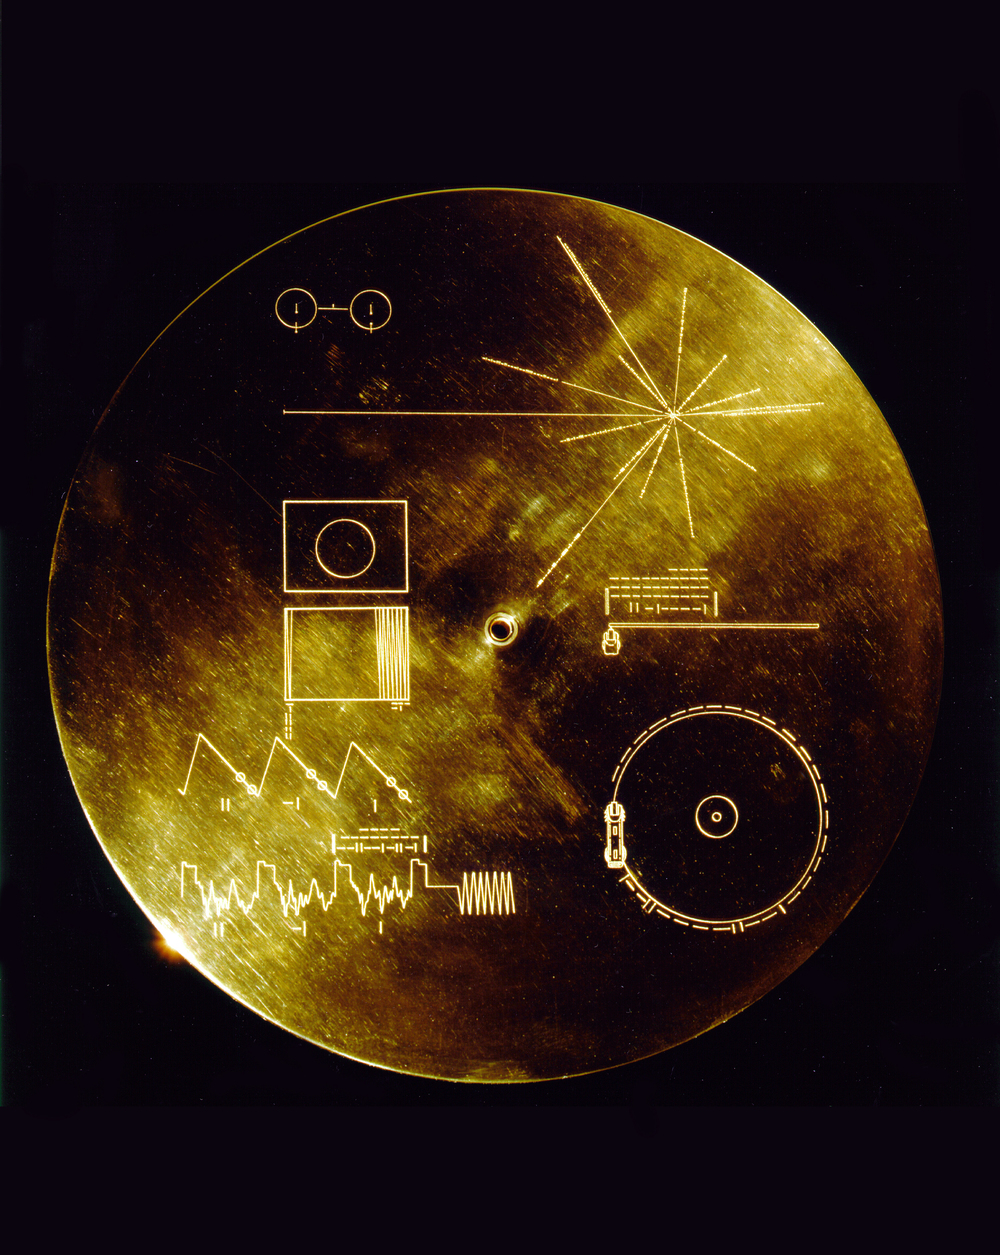 Voyager 1 - Gold Record